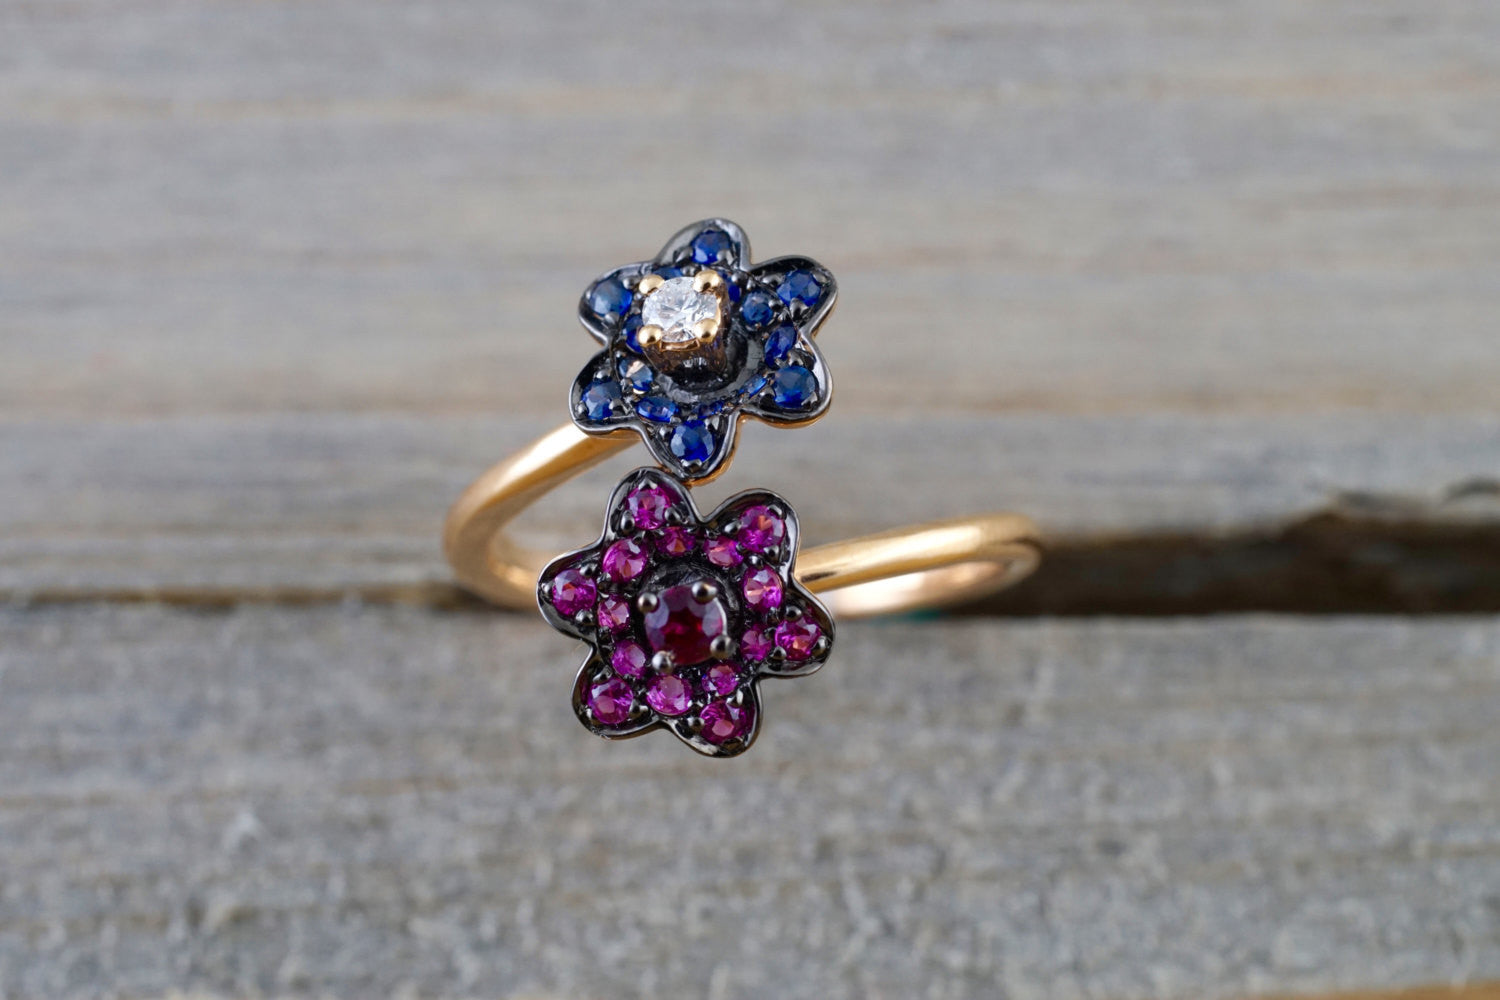 18K Rose Gold Art Deco Sapphire Diamond Floral Vintage Classic Ring Band Shaped